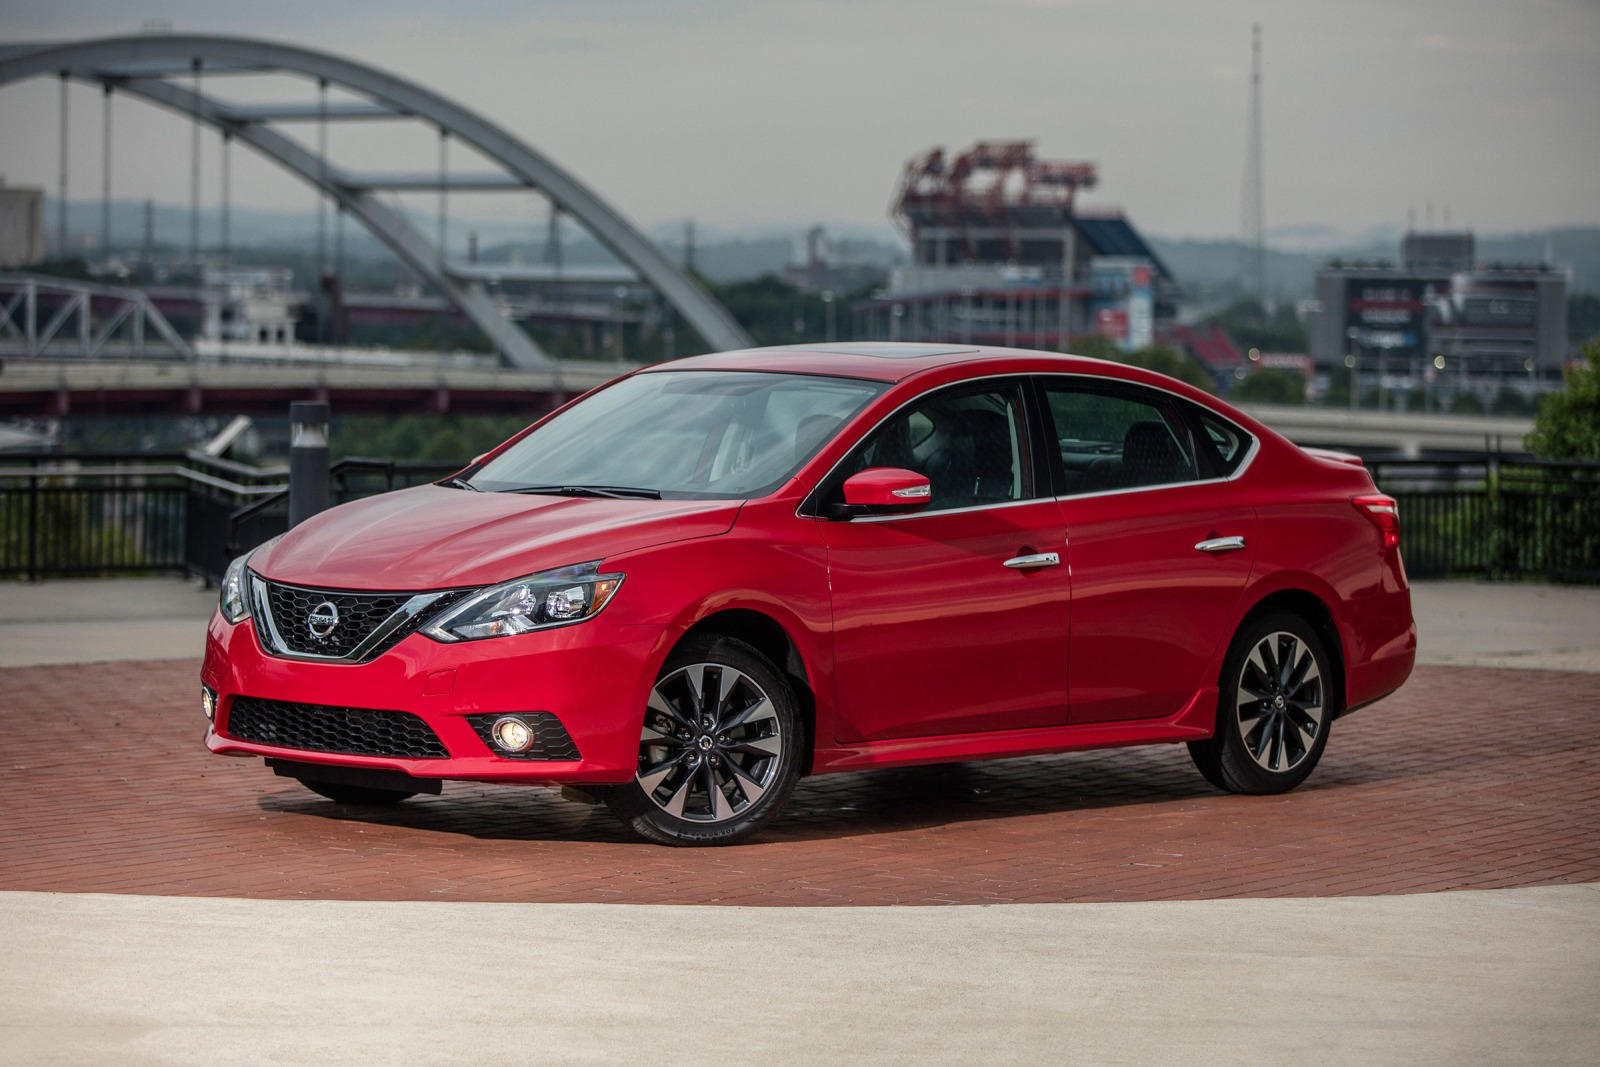 2018 Nissan Sentra Sedan Review, Trims, Specs and Price - CarBuzz